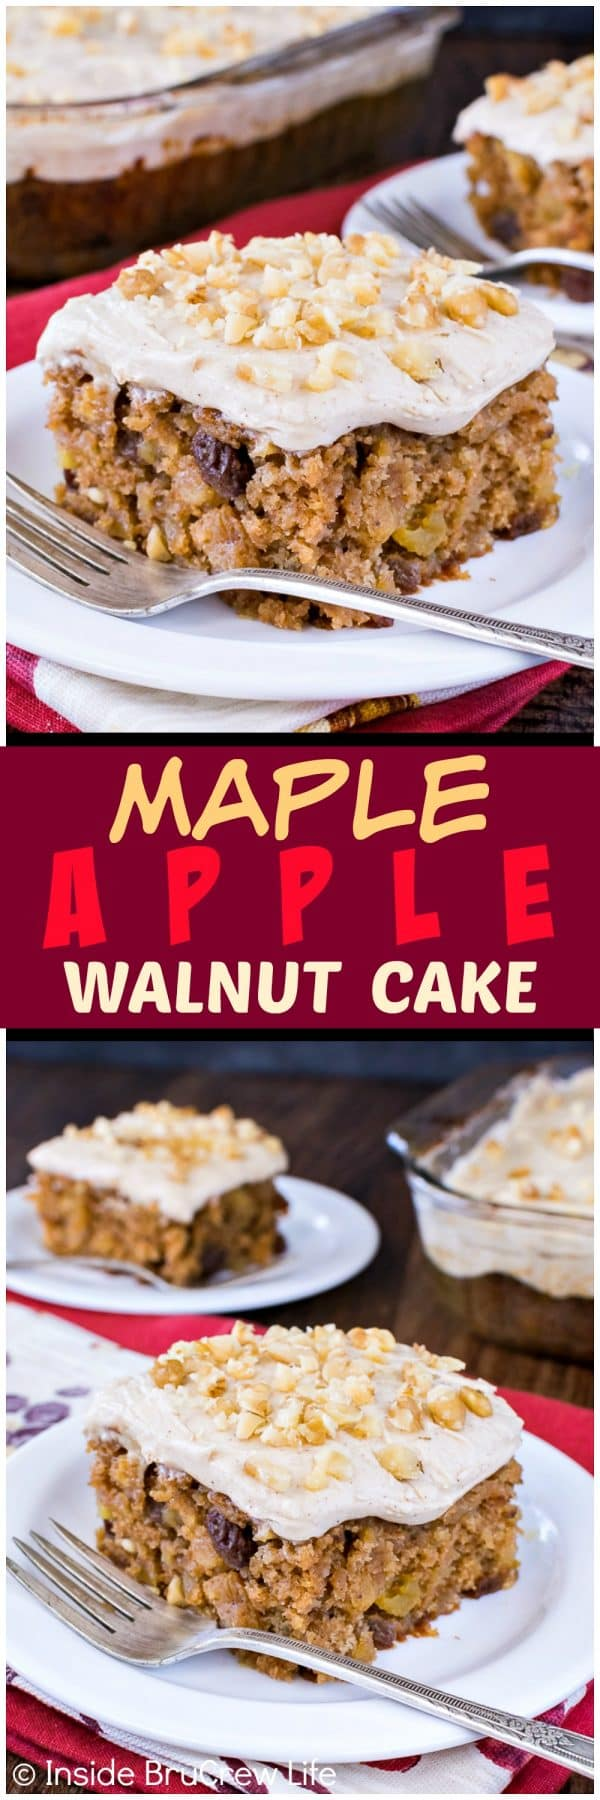 Maple Apple Walnut Cake - adding lots of fruit and nuts to this easy homemade cake makes it the perfect fall recipe for any dinner or party!